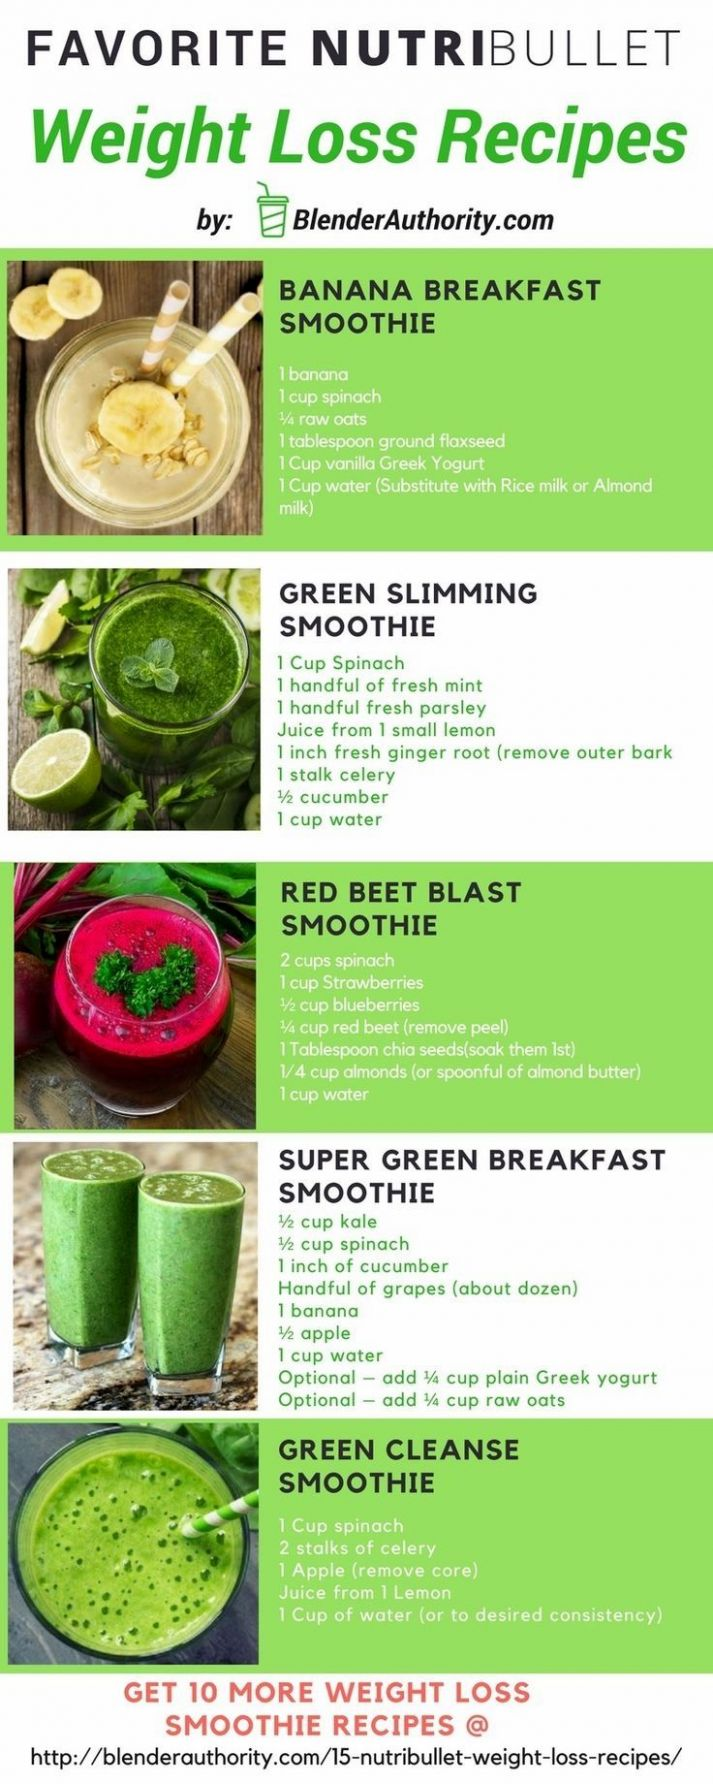 Pin on Weight Loss - Breakfast Juice Recipes Weight Loss